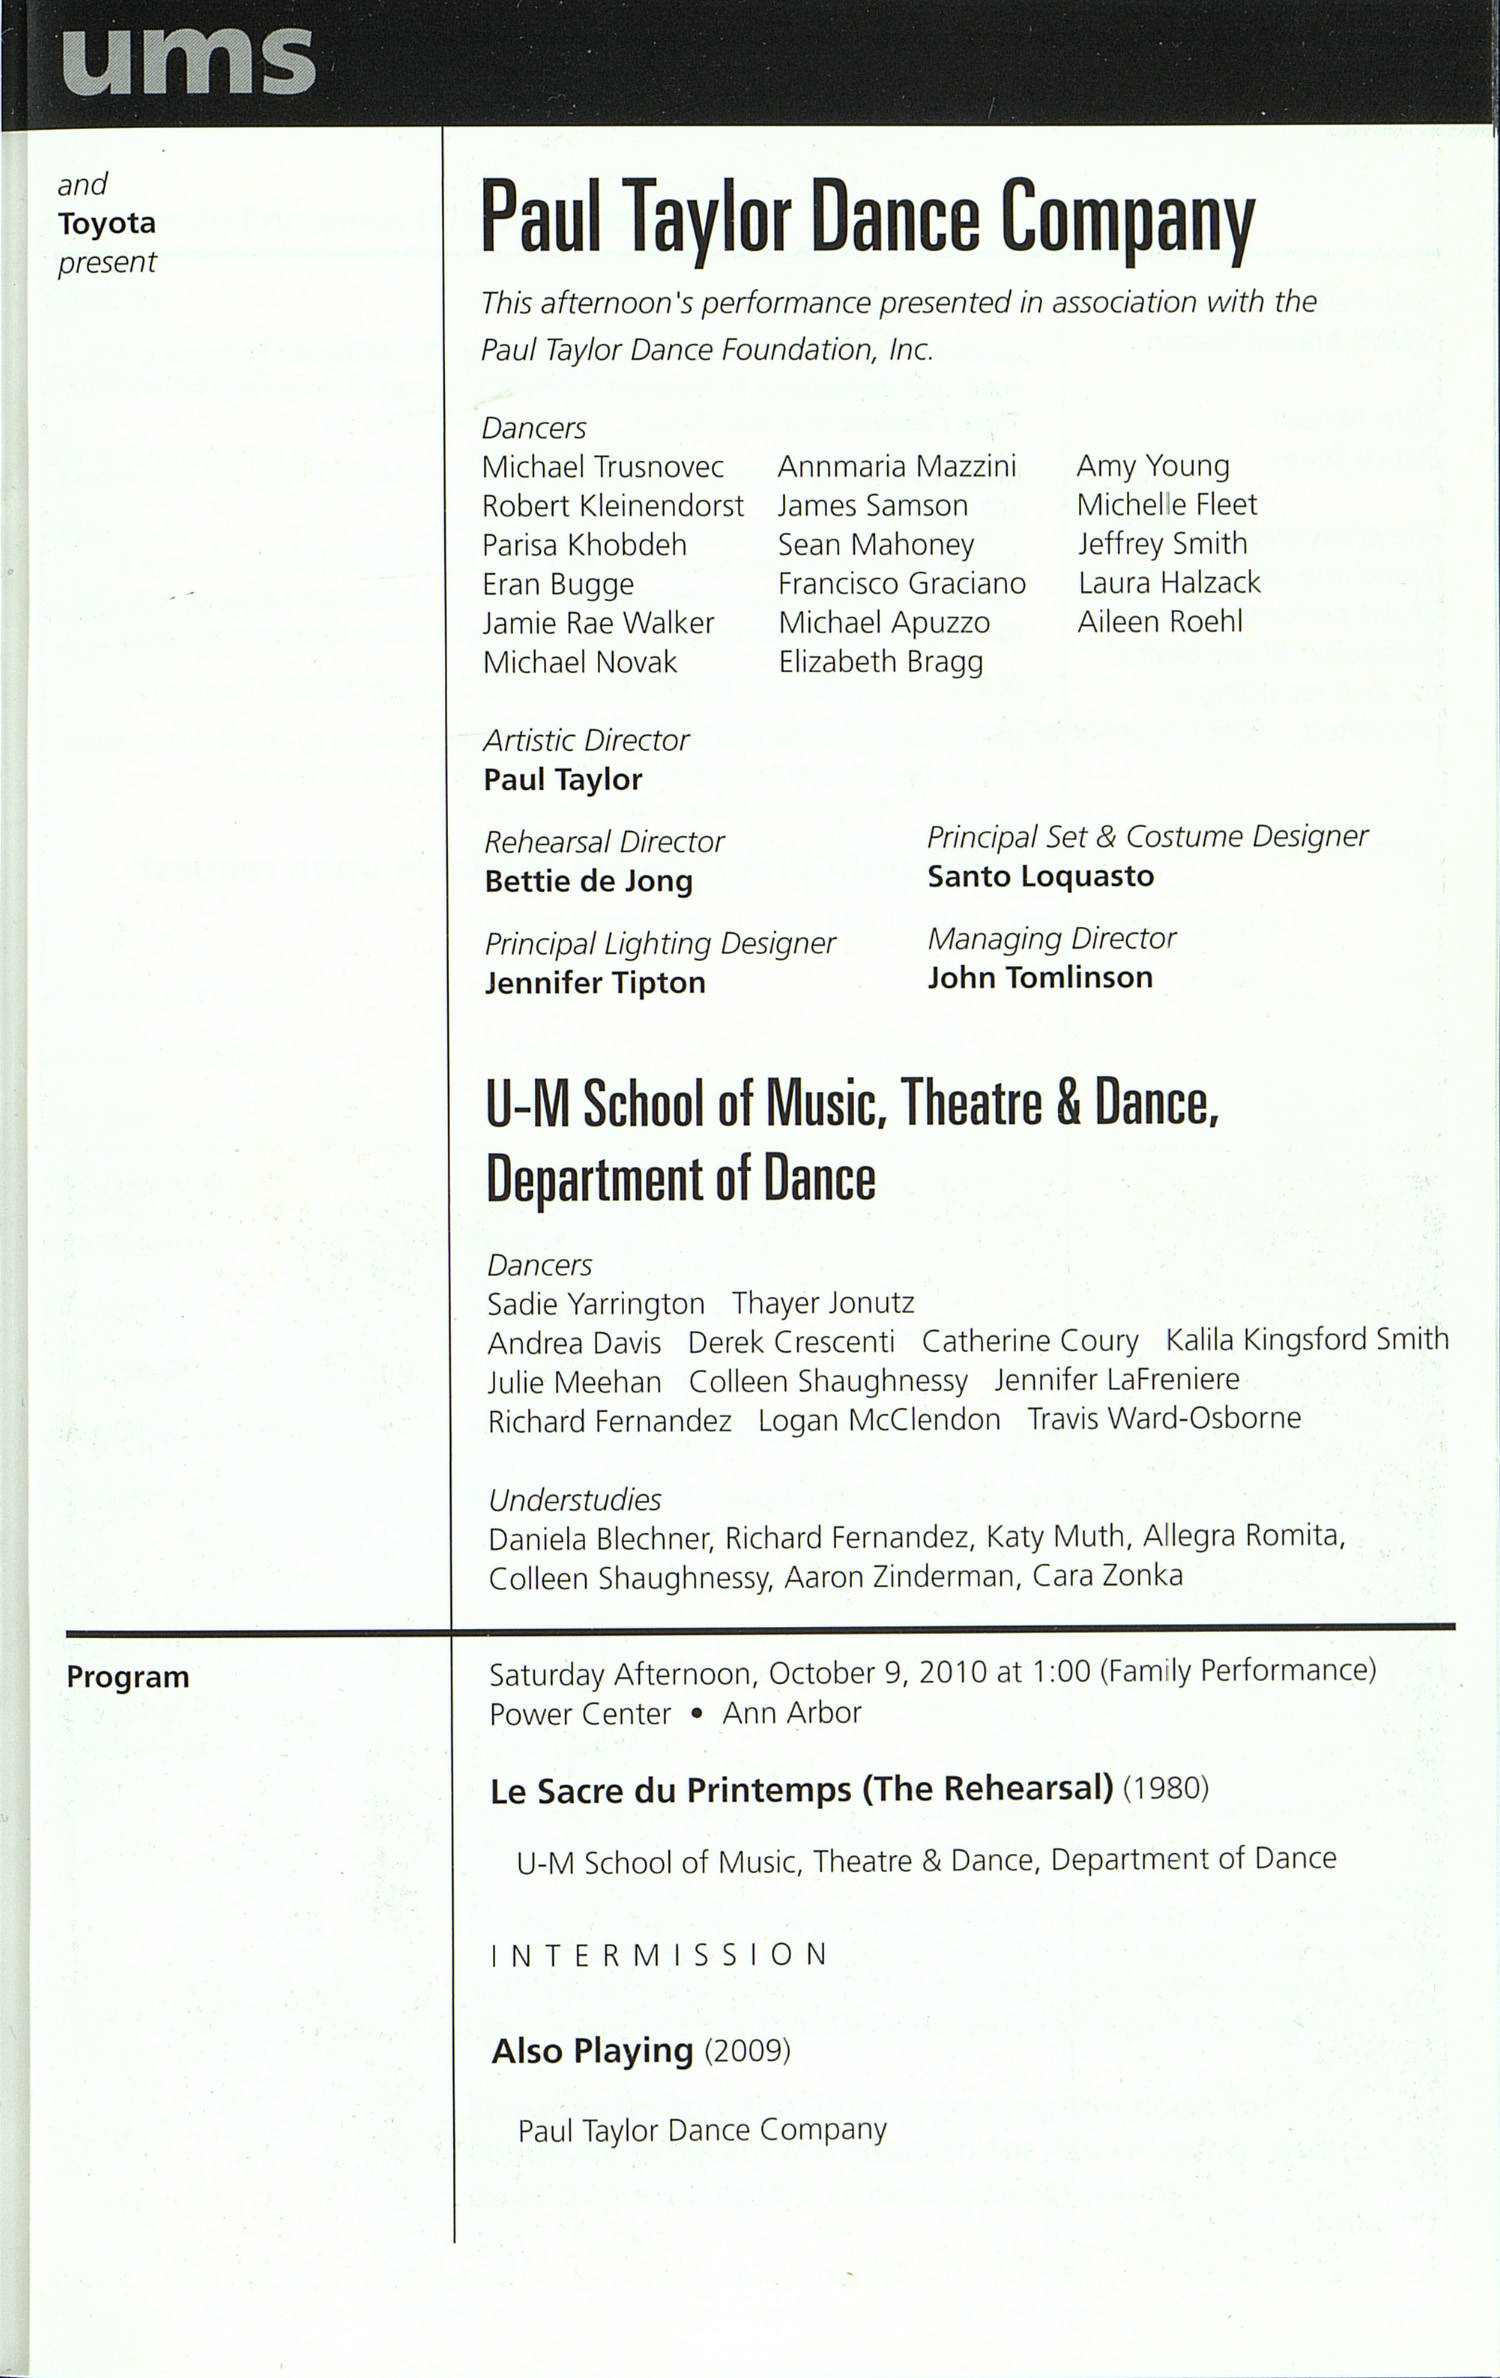 UMS Concert Program, Saturday Sep. 25 To Oct. 09: Ums 10 11 - Fall 2010 - Saturday Sep. 25 To Oct. 09 --  image